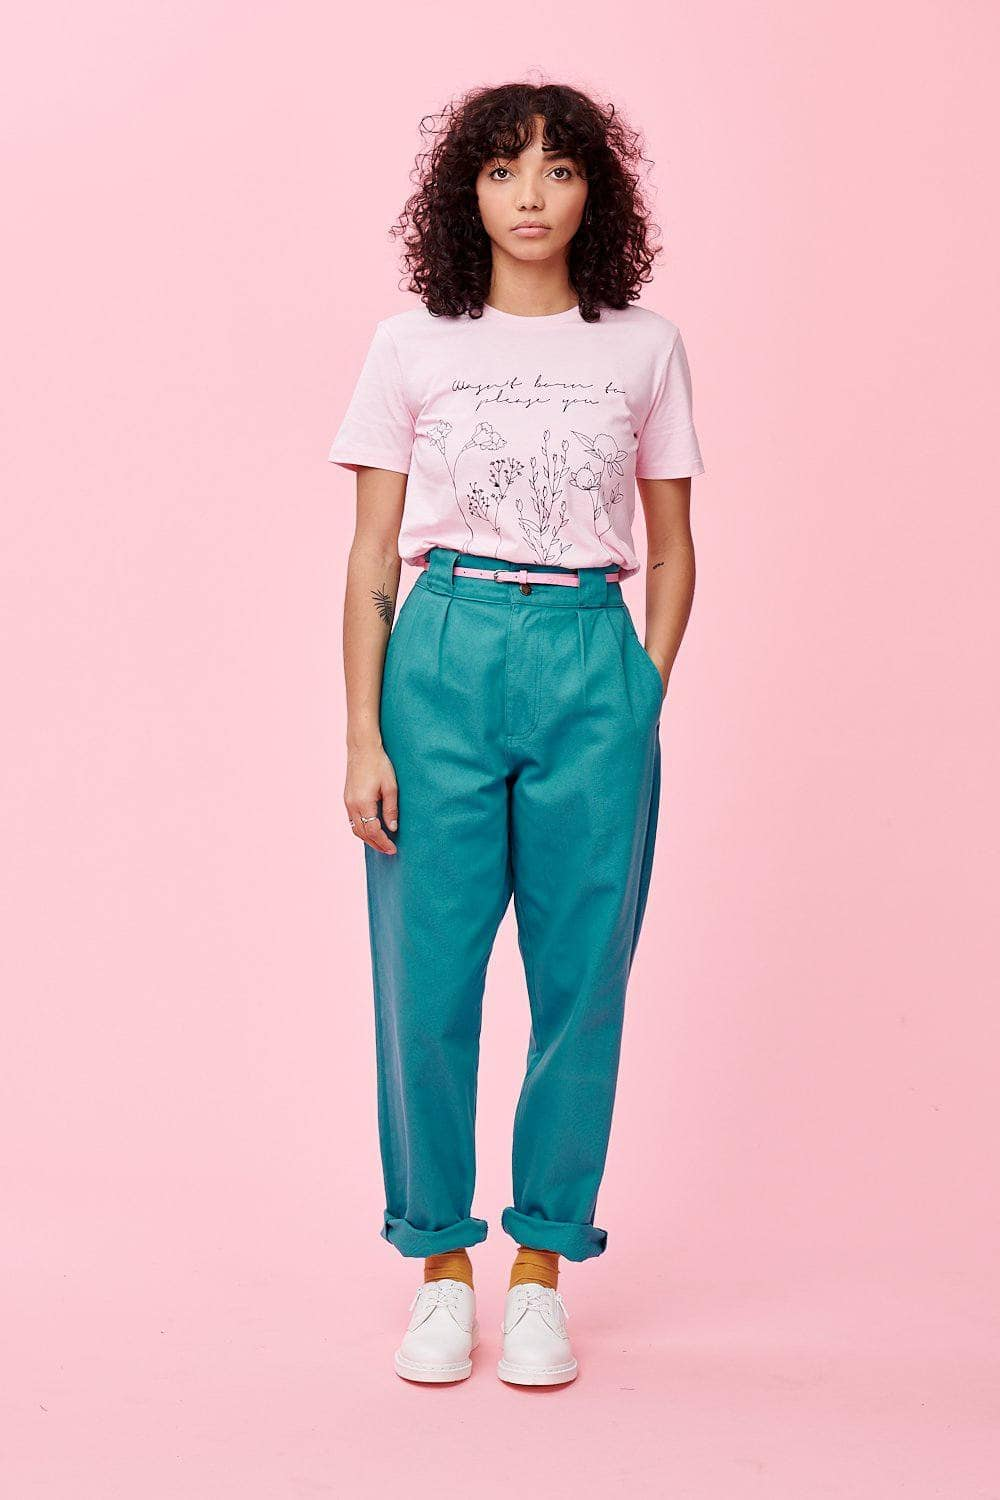 Lucy & Yak jeans 'Addison' High Waisted Organic Cotton Twill Jeans in Jade